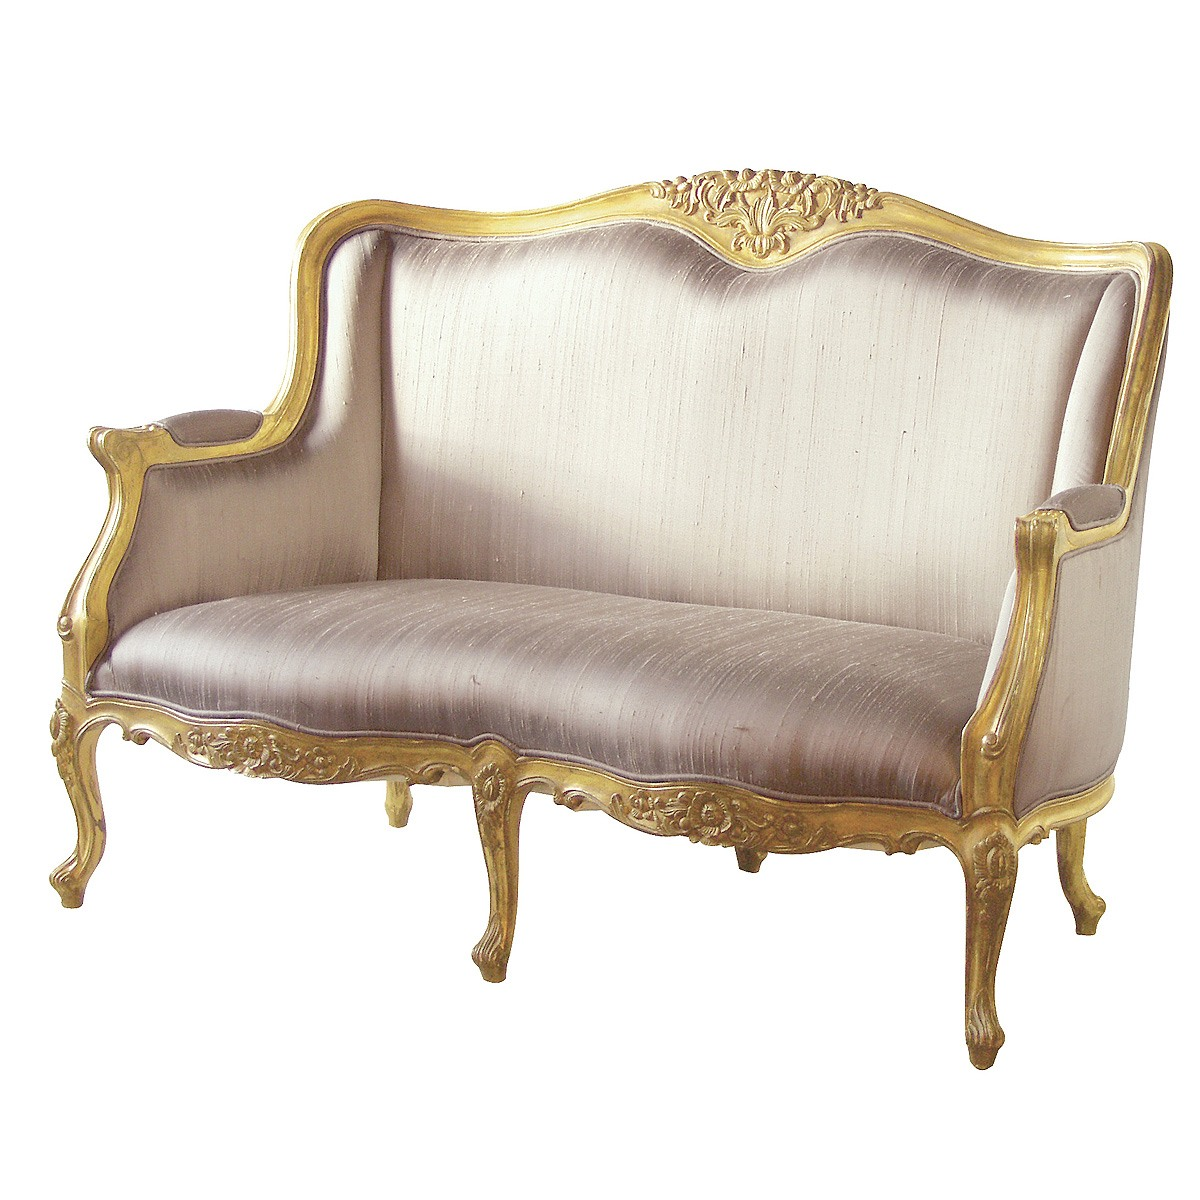 Sofa Versailles Gold Bedroom Sofa With Silk Upholstery French